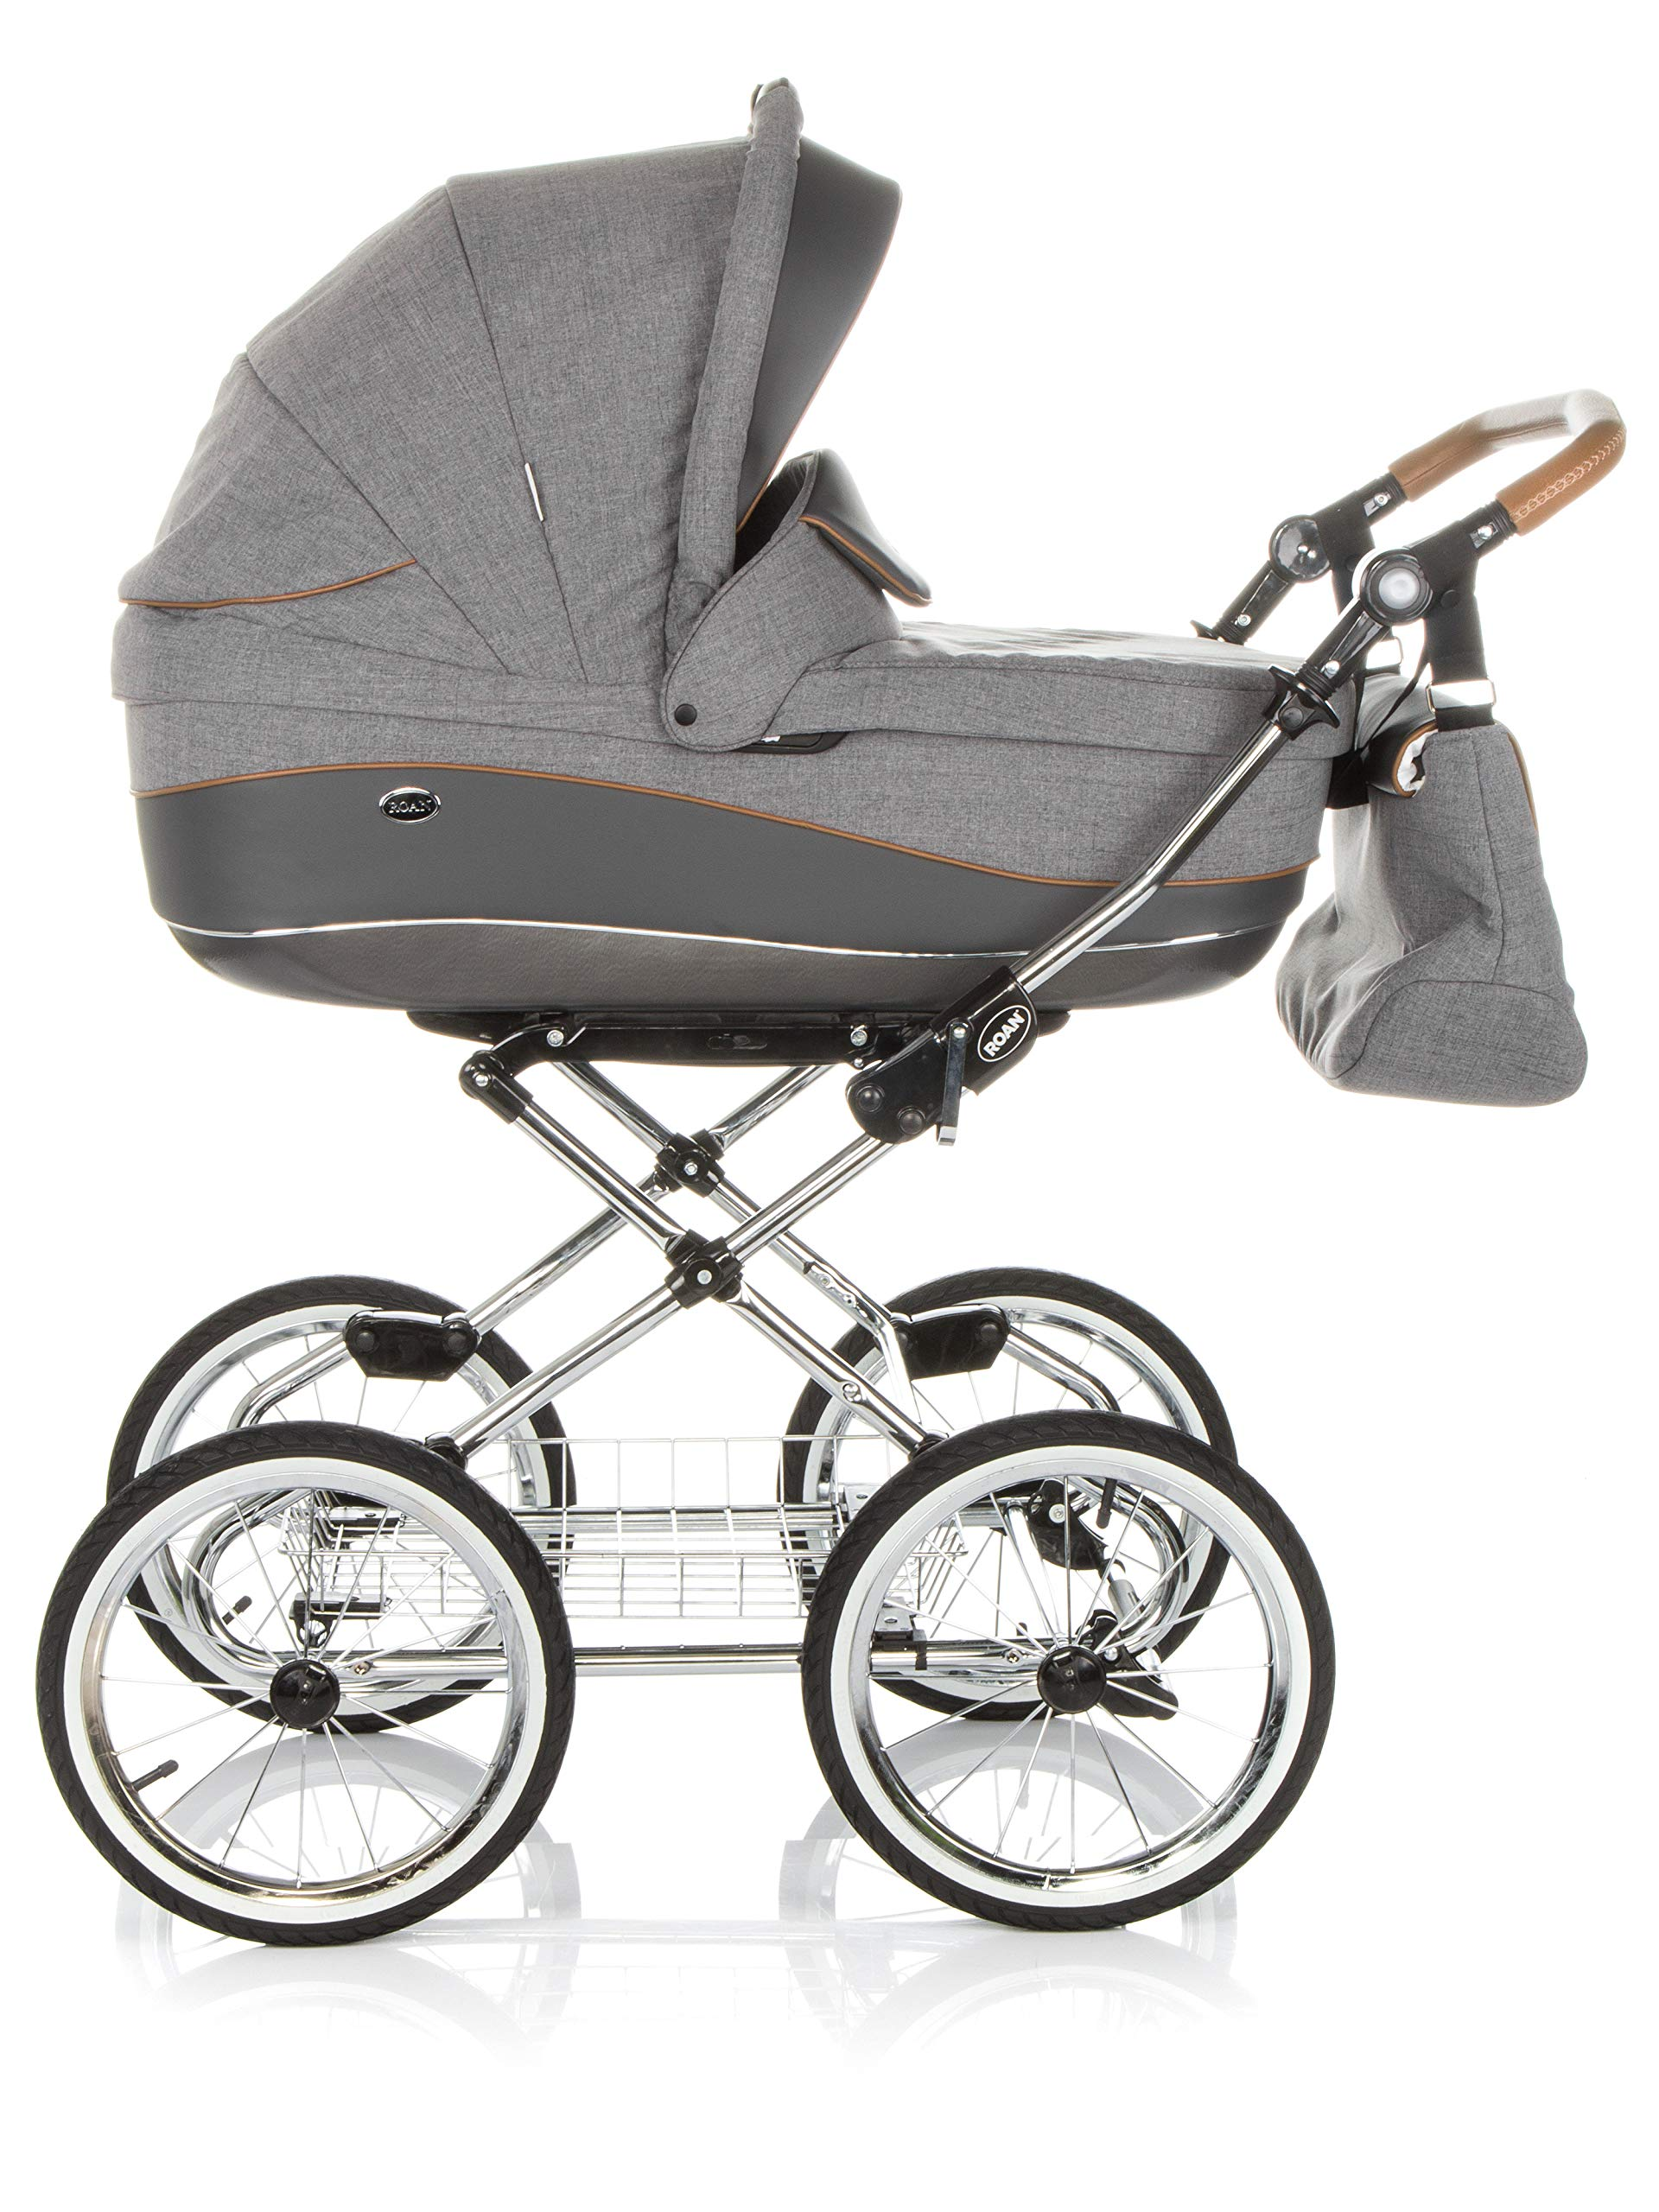 Children's Pram Buggy Stroller Combination Car seat Classic Retro Baby Carrier ROAN Emma (E-56 Grey-Grey Leather, 3IN1) JUNAMA Frame / wheels Sturdy and lightweight aluminum frame construction with folding function 1-click system for easy assembly and disassembly Practical carrying handle for easy storage of the folded frame Wheels for inflating (14 inch) removable wheels Brake system with central brake Height-adjustable push handle - 10-fold matching shopping basket Dimensions folded with wheels: 86 x 60 x 40 cm folded without wheels: 76 x 60 x 26 cm Total height of the stroller to hood top: 106 cm Height of the tub from the ground: 60 cm Wheelbase External dimensions: 80x 58 cm Variable height of the push handle: 77- 119 cm Weight of the frame incl. Wheels and carrying bag 15 kg Carrycot Length and width of carrycot outside: 88 x 42 cm Carrying bag length and width inside: 76 x 35 cm Sturdy plastic tub with comfortable mattress and side protection Ventilation slots on the plastic tub The baby car seat 0-13 kg Maxi-Cosi in black incl. Adapter 2